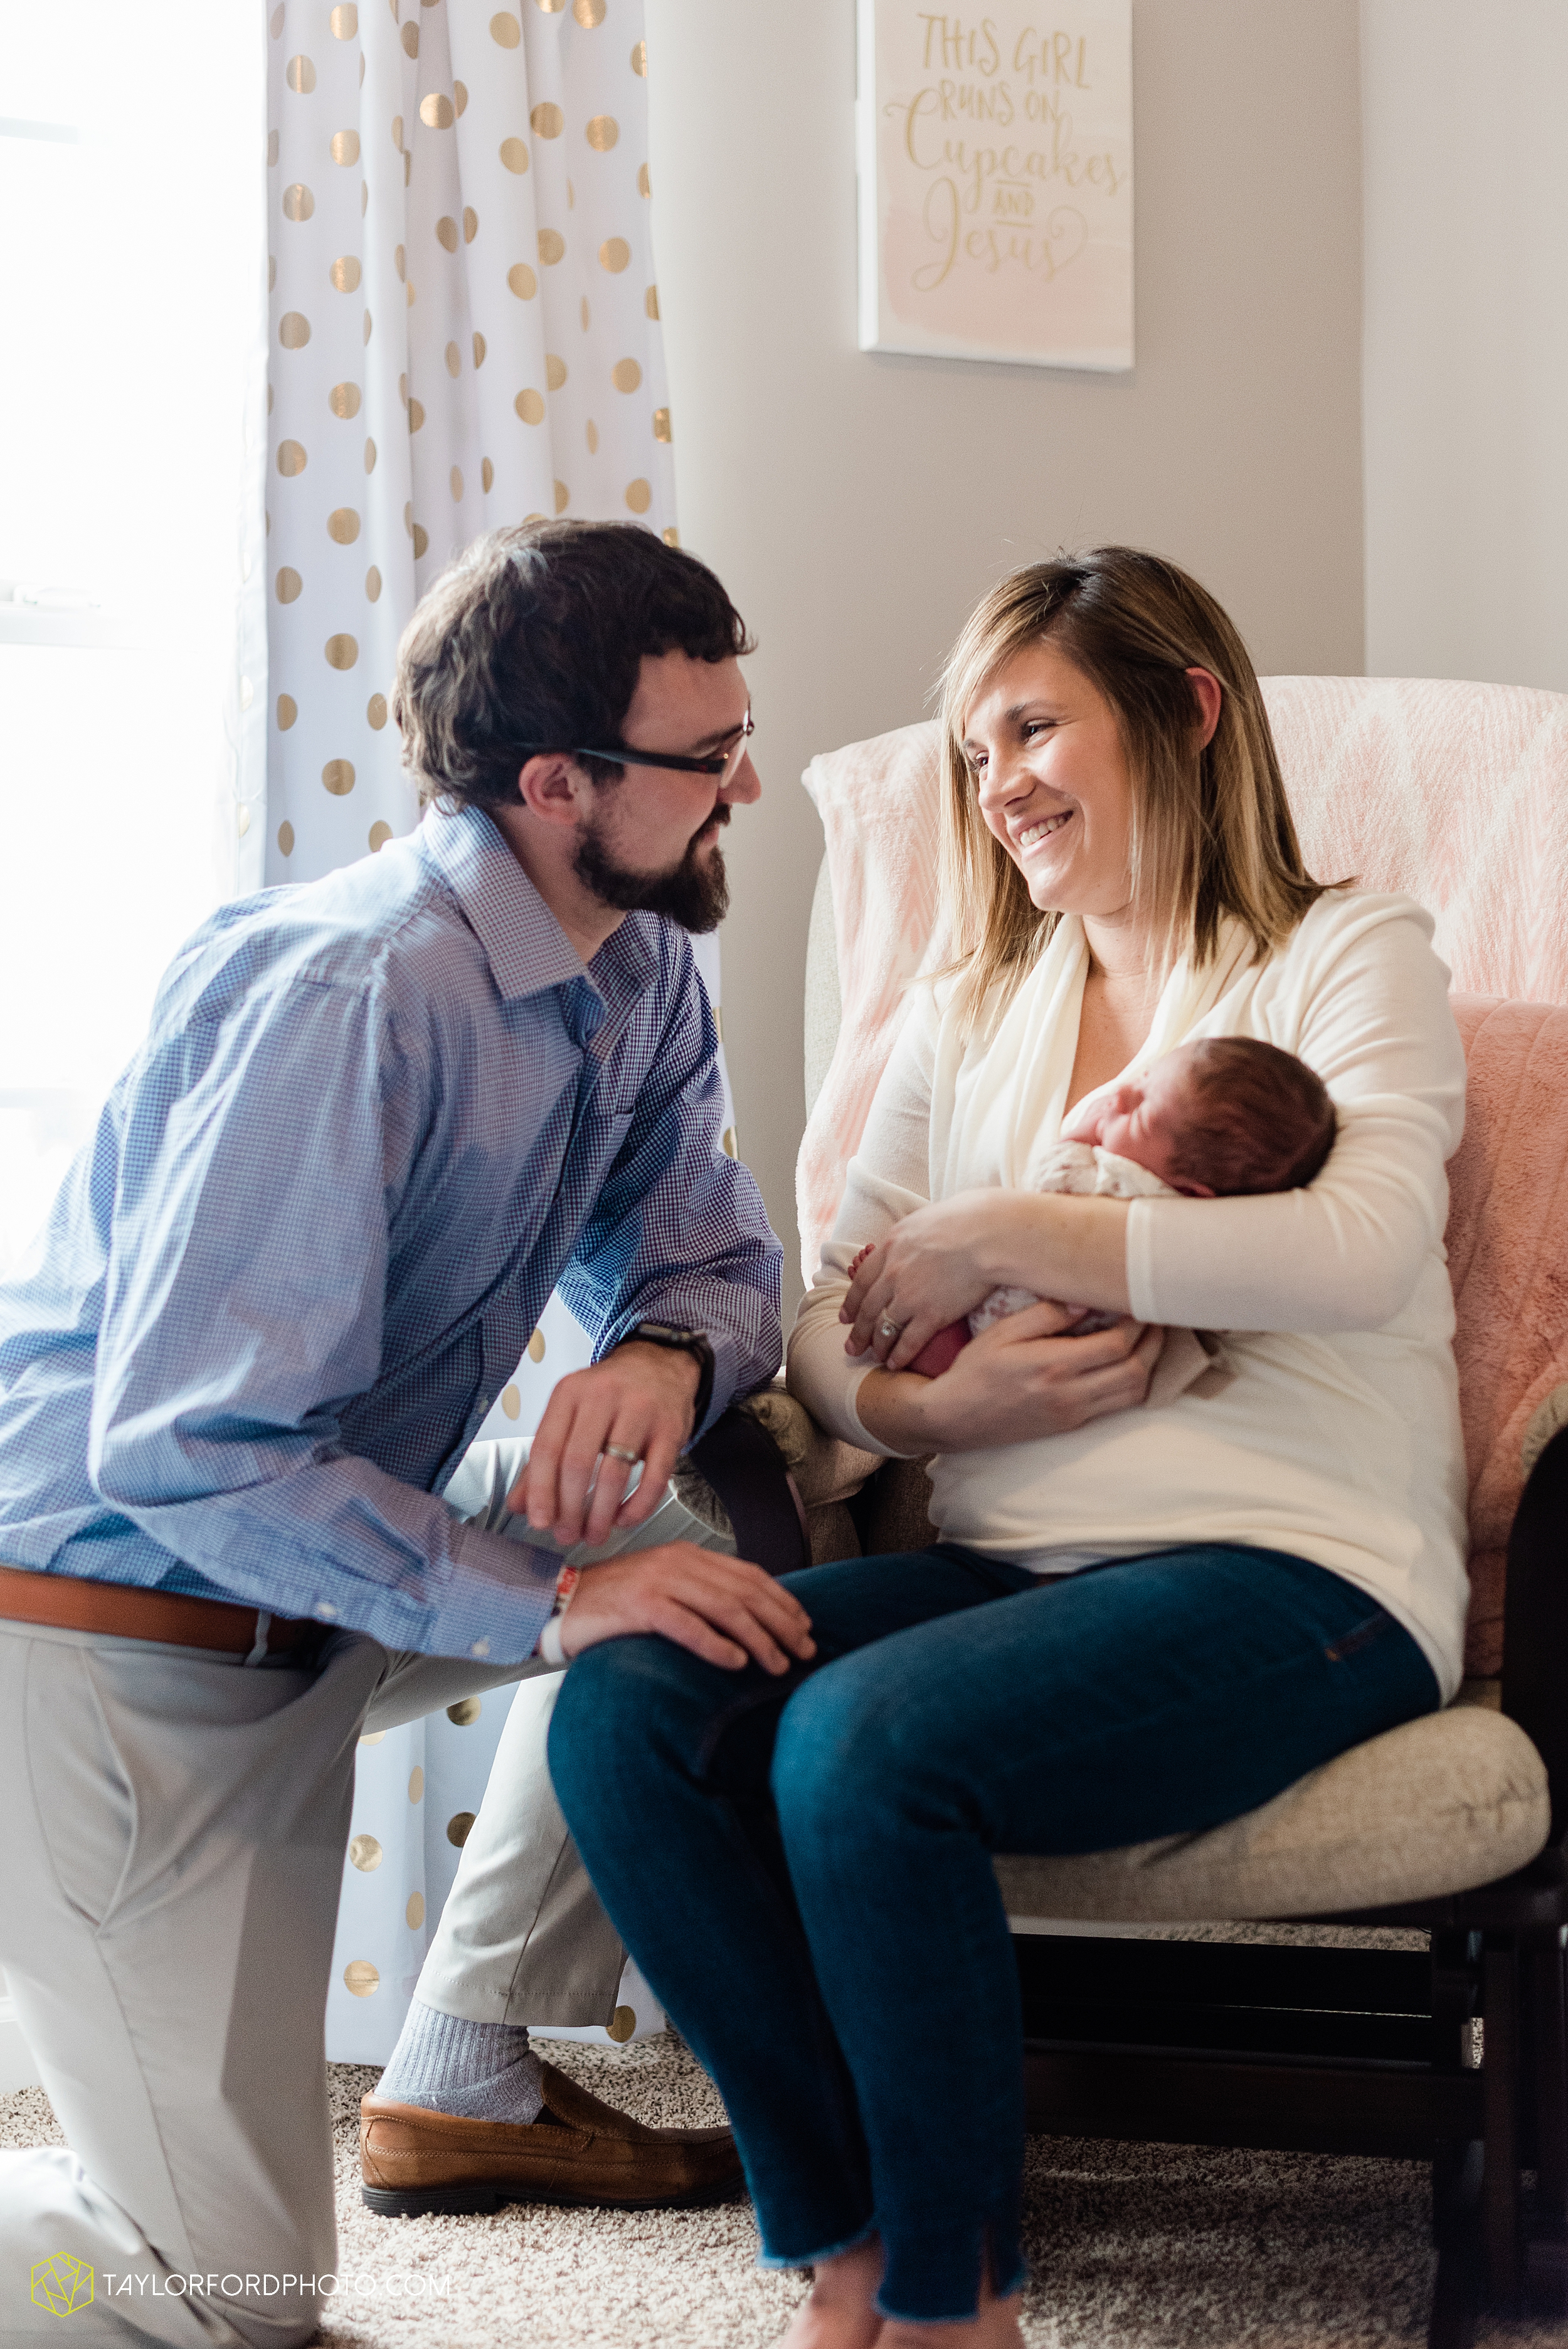 ashley-aaron-noraa-lifestyle-at-home-family-newborn-blacklick-columbus-ohio-photography-taylor-ford-hirschy-photographer_2327.jpg